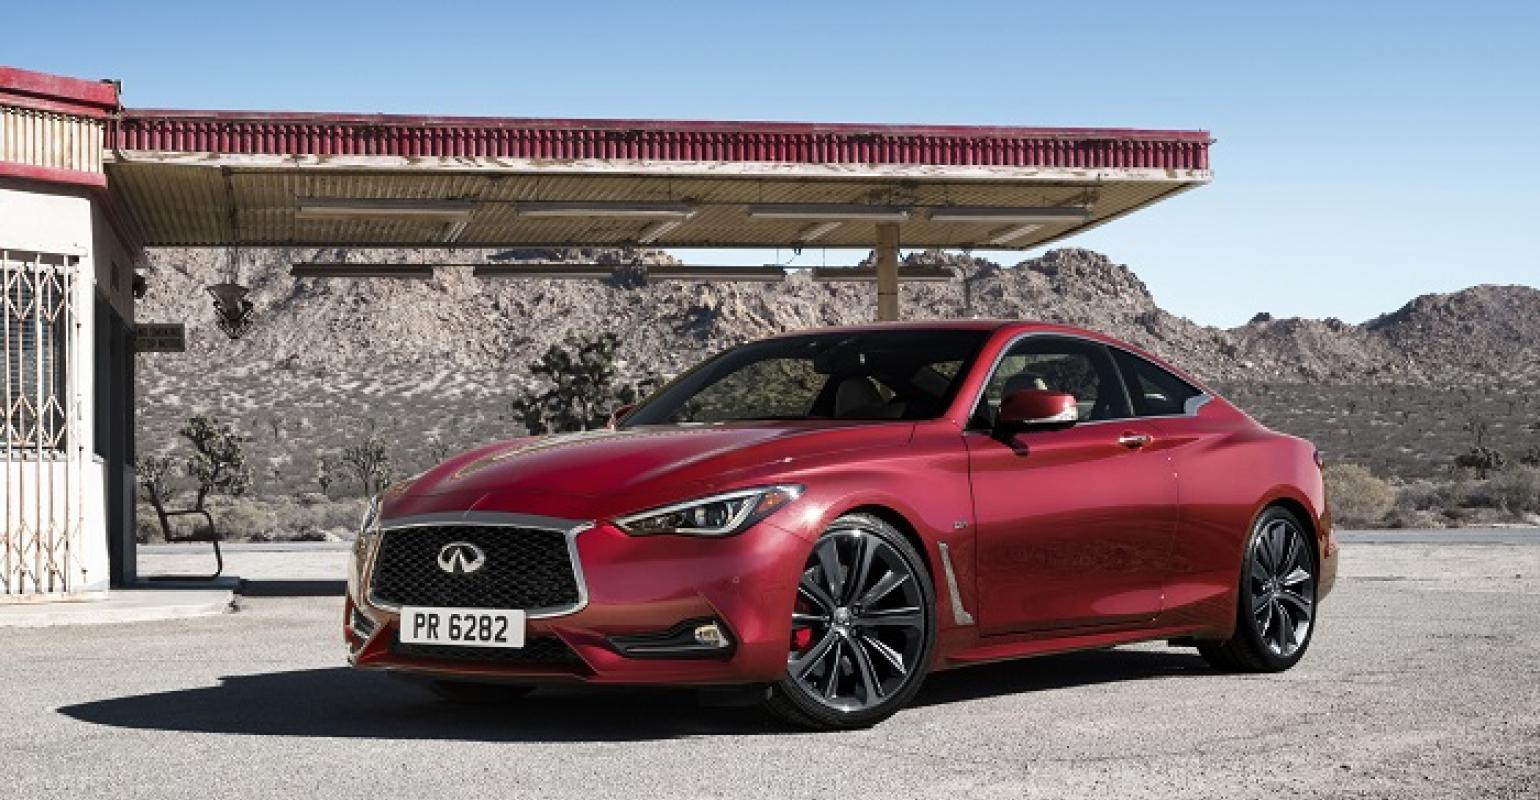 Rsquo17 Infiniti Q60 Coupe On Late Summer In Us